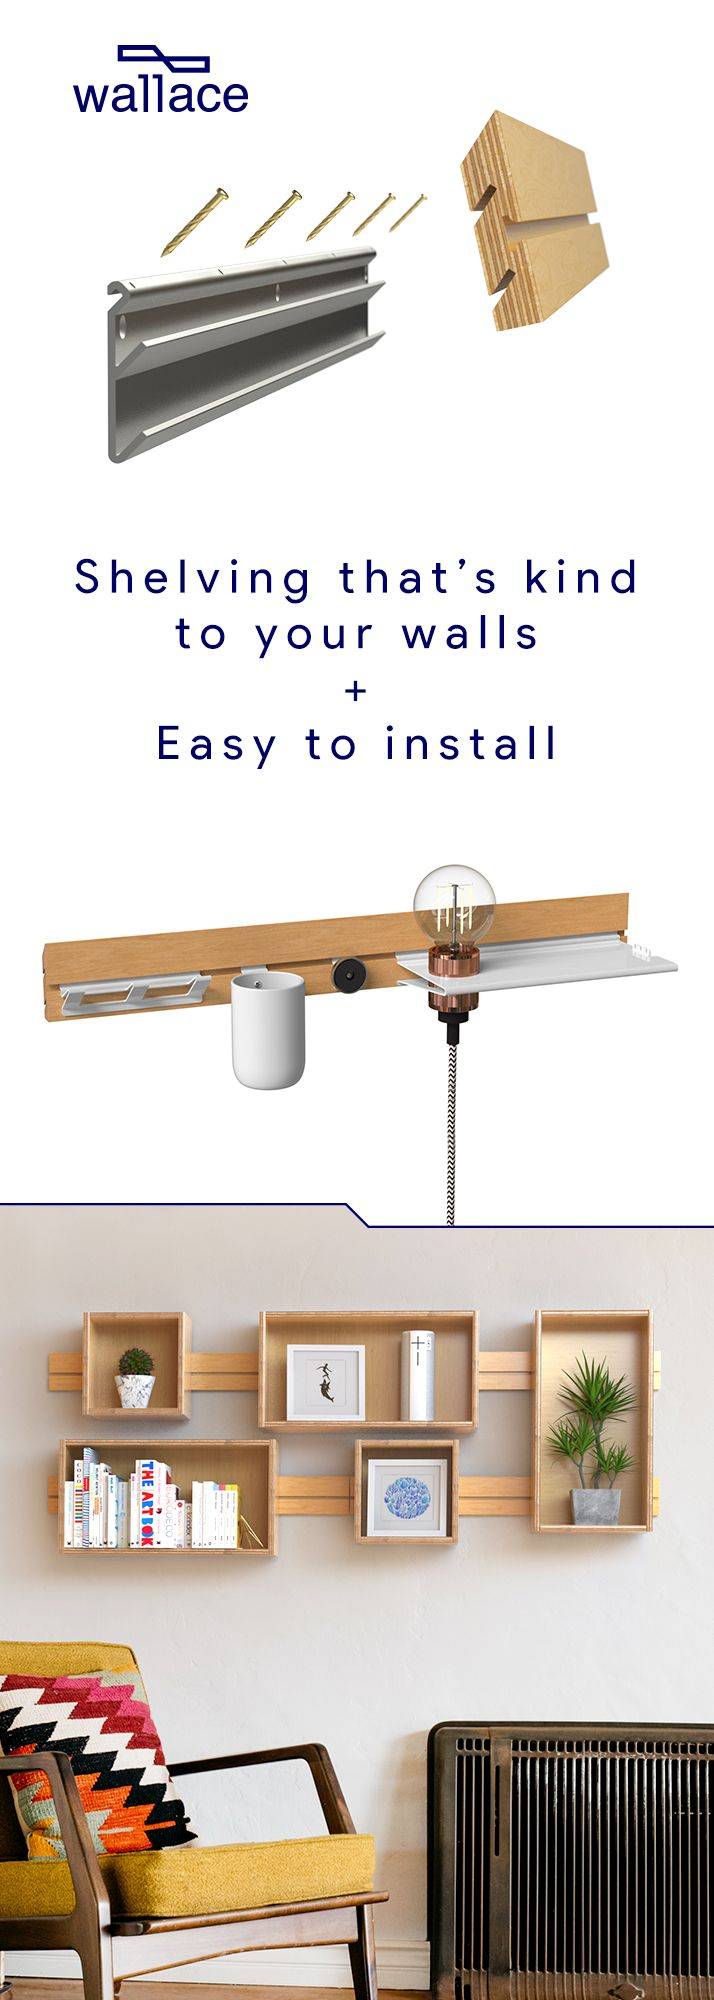 Meet Wallace, the ultimate shelving system for every room in your house that doesn't require screws, studs, or anchors.